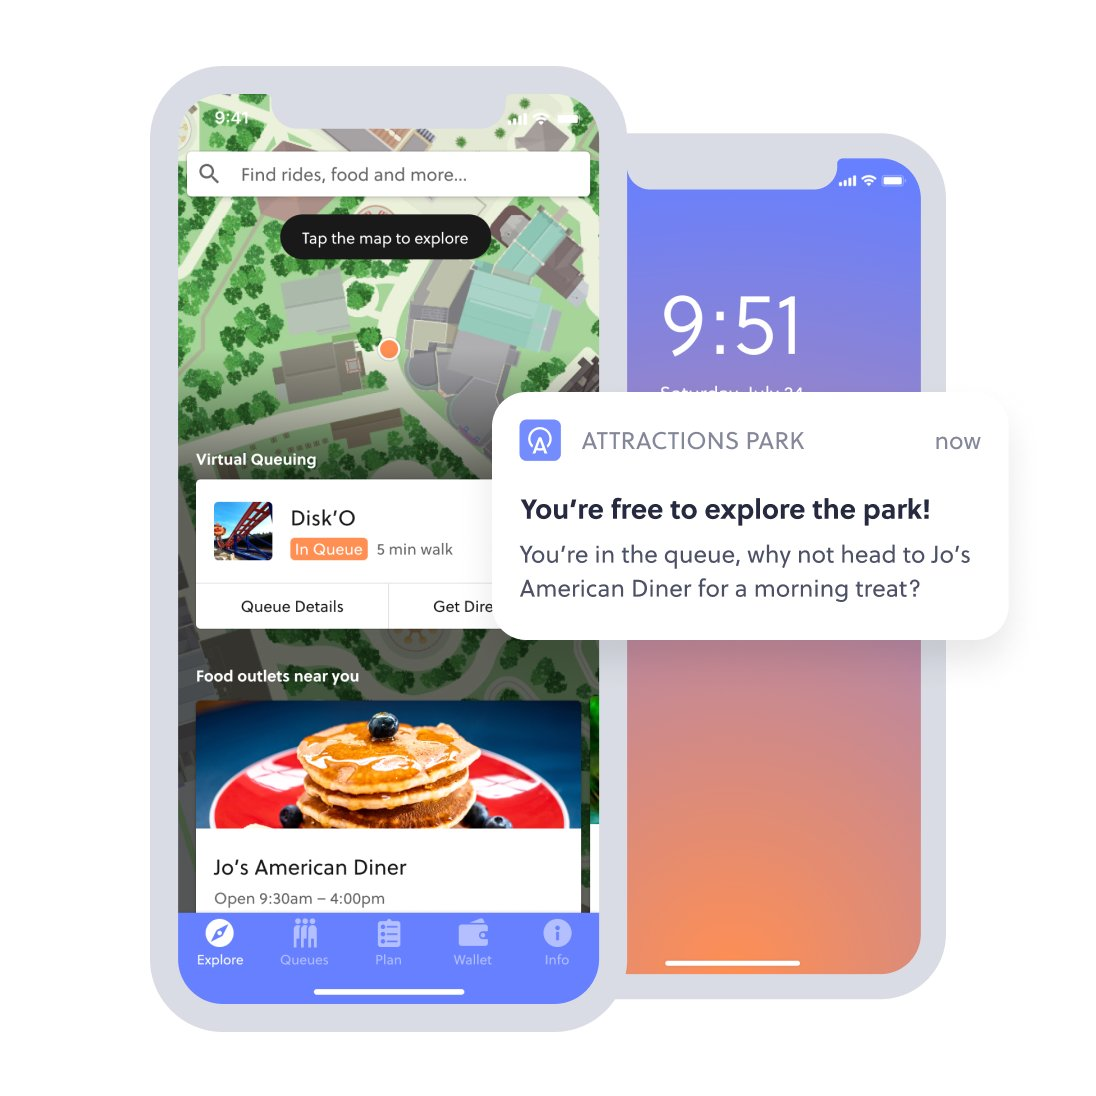 in app features and notifications